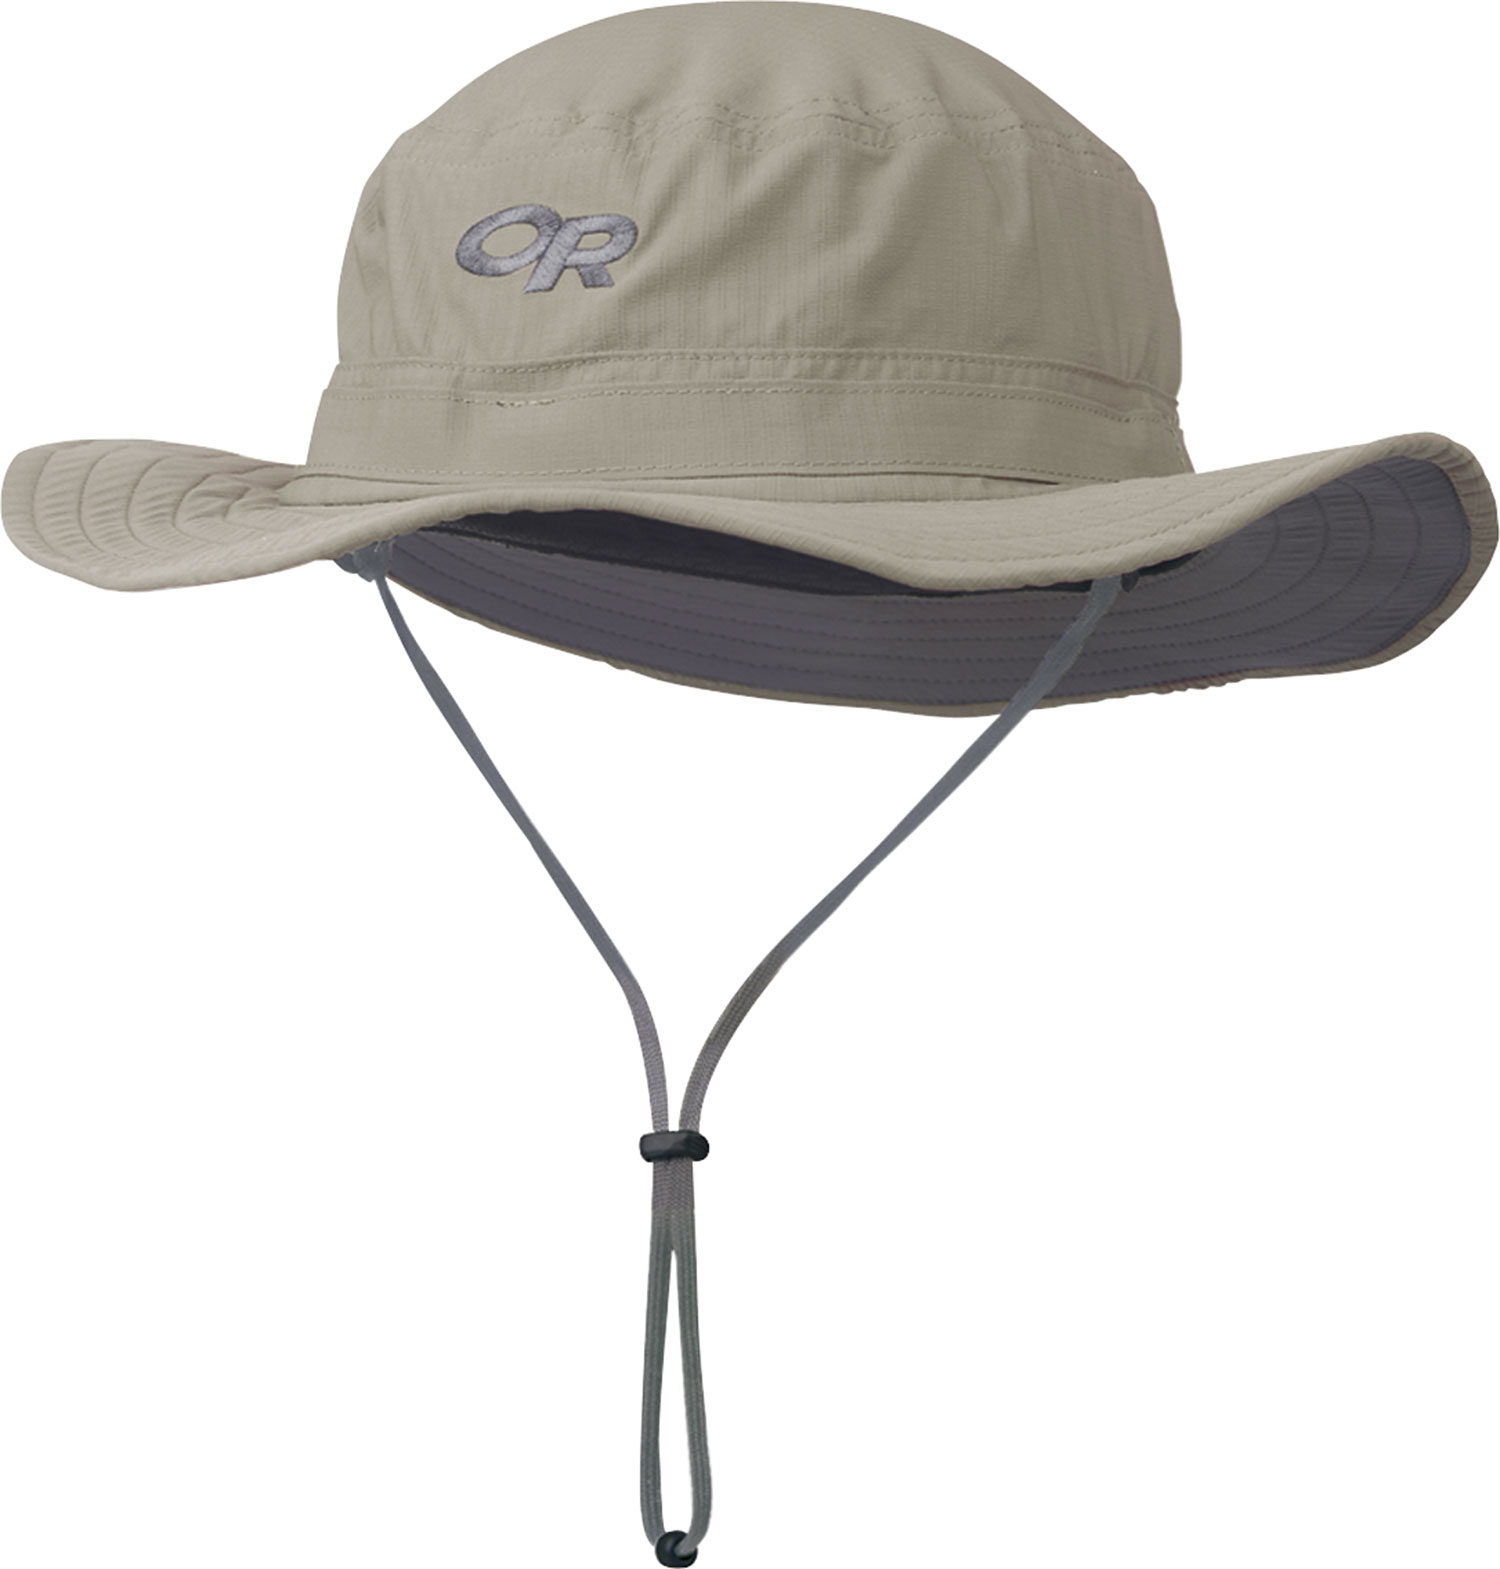 Outdoor Research Helios Sun Hat Khaki - $21.95